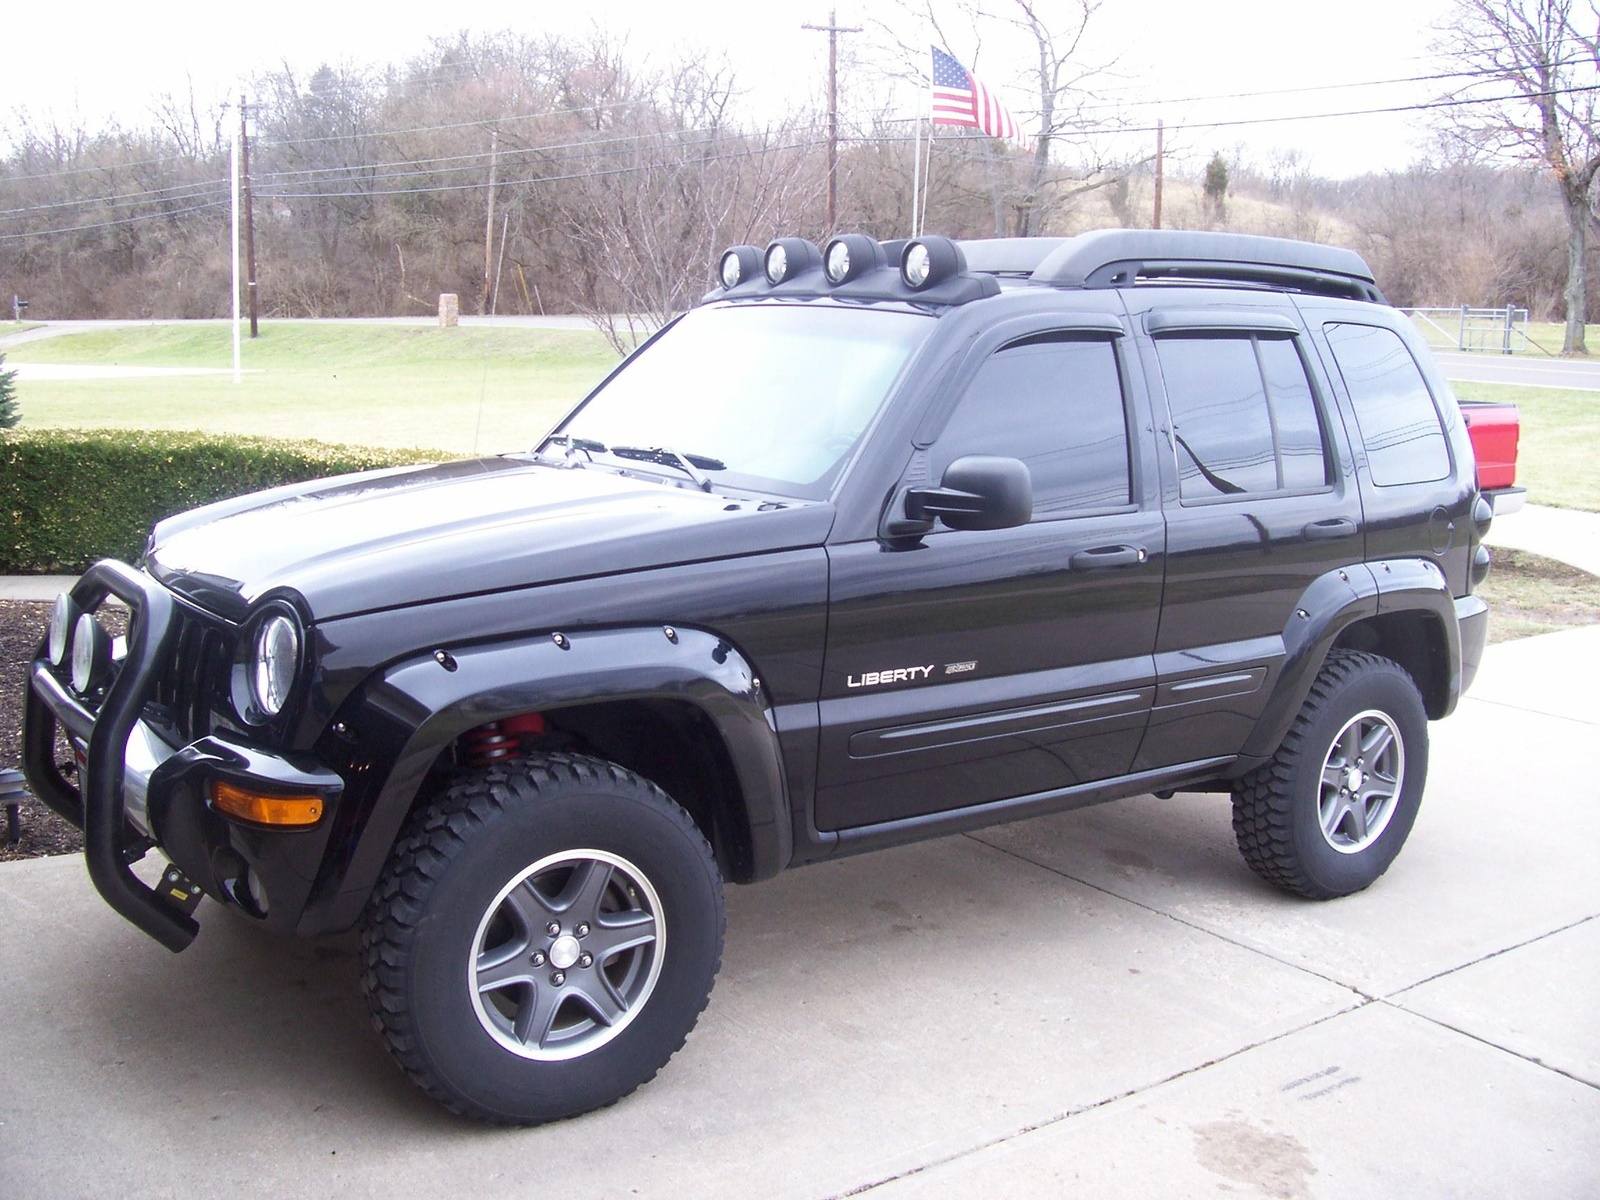 Lifted 2005 liberty related pictures 2010 jeep liberty lifted jeep after its first lift jeep jeep jeep jeep jeep pinterest 2010 jeep liberty